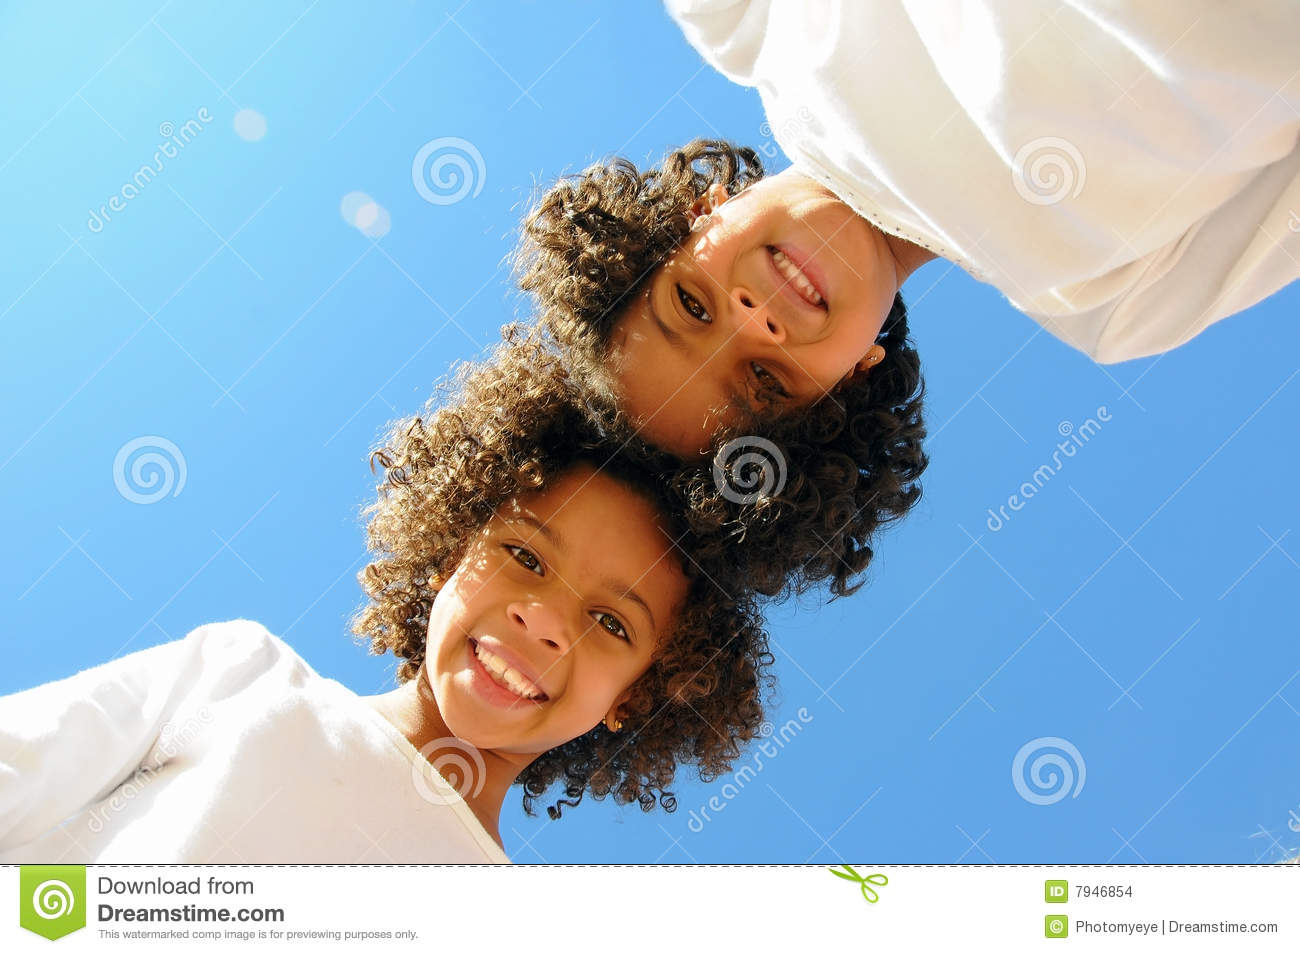 Two girls head to head stock photo. Image of white, view ...